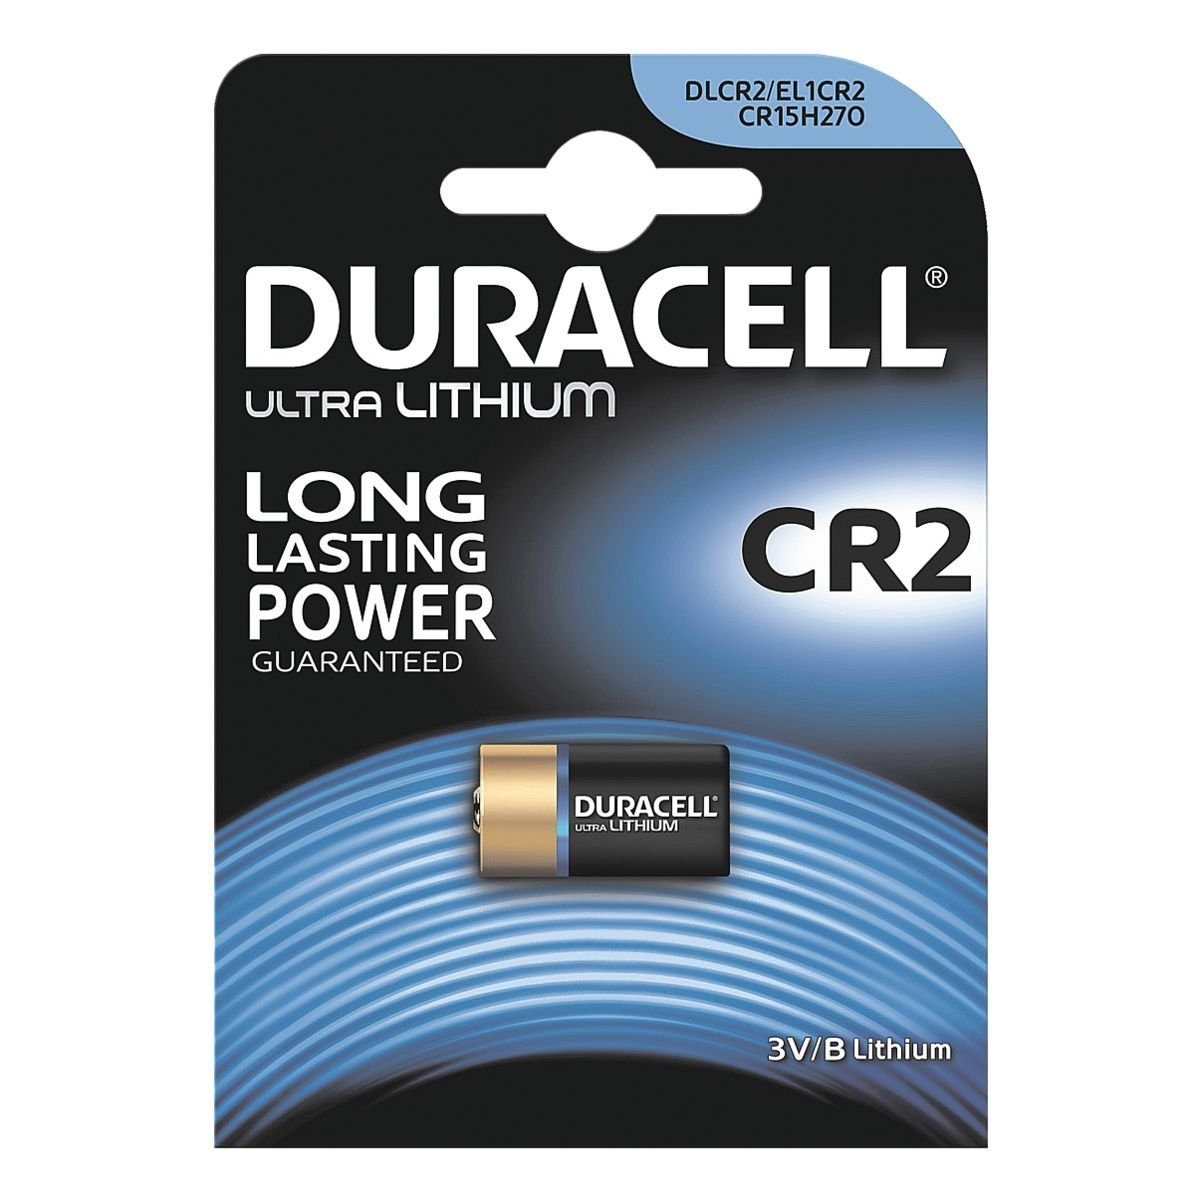 Duracell Photo Batterie CR2 / CR17355 »Photo Lithium Ultra«